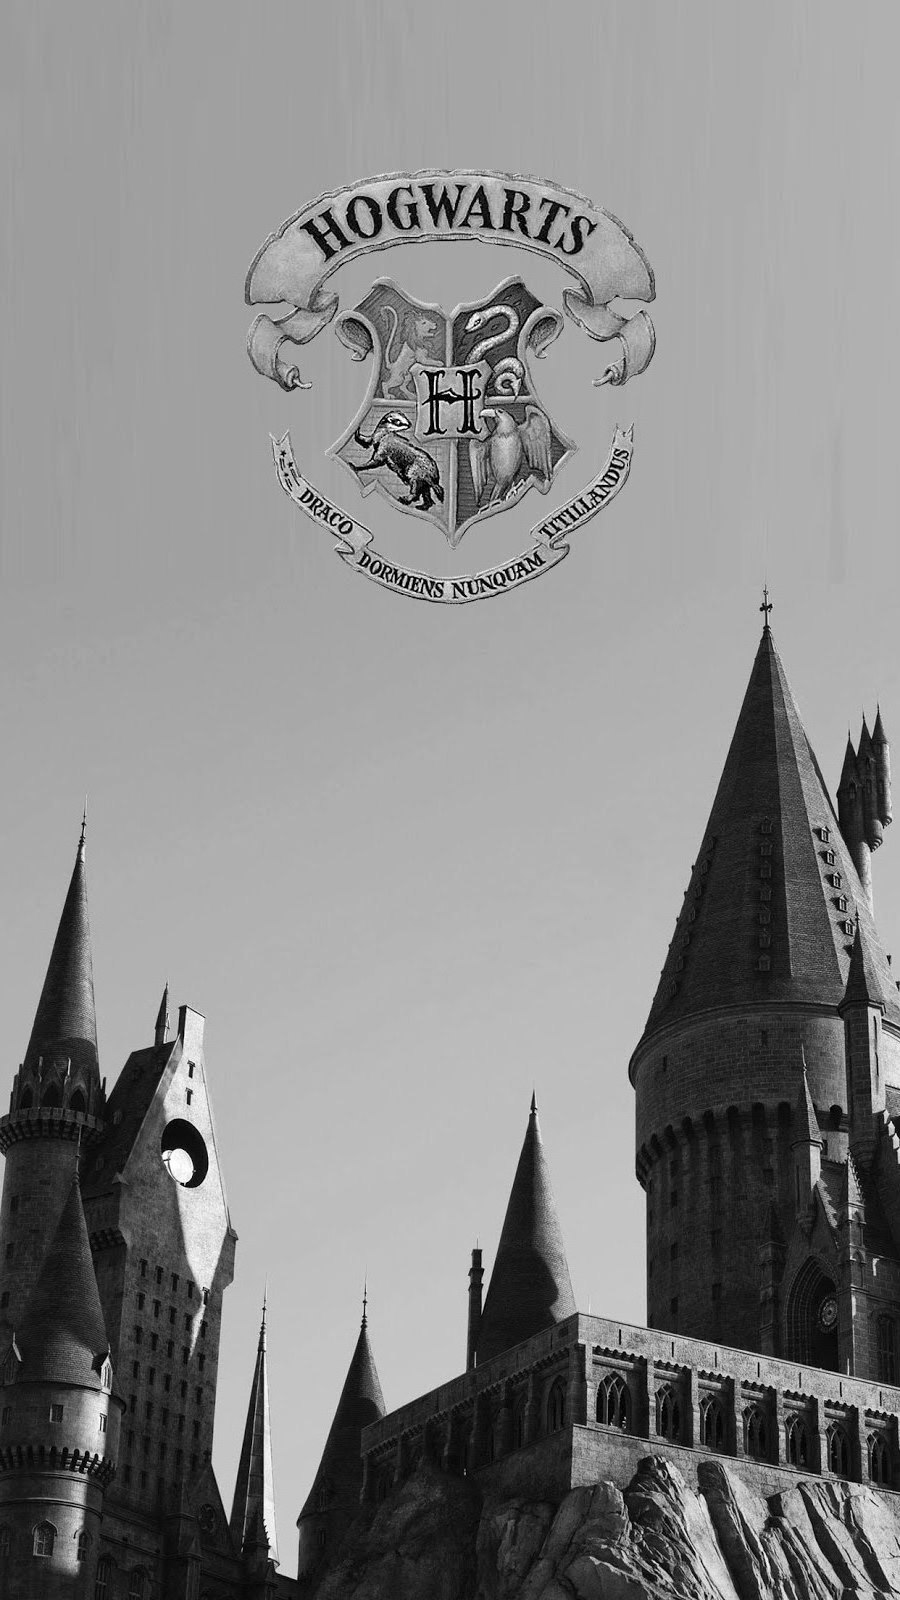 hogwarts iphone wallpaper minimal harry potter iphone wallpapers 10781